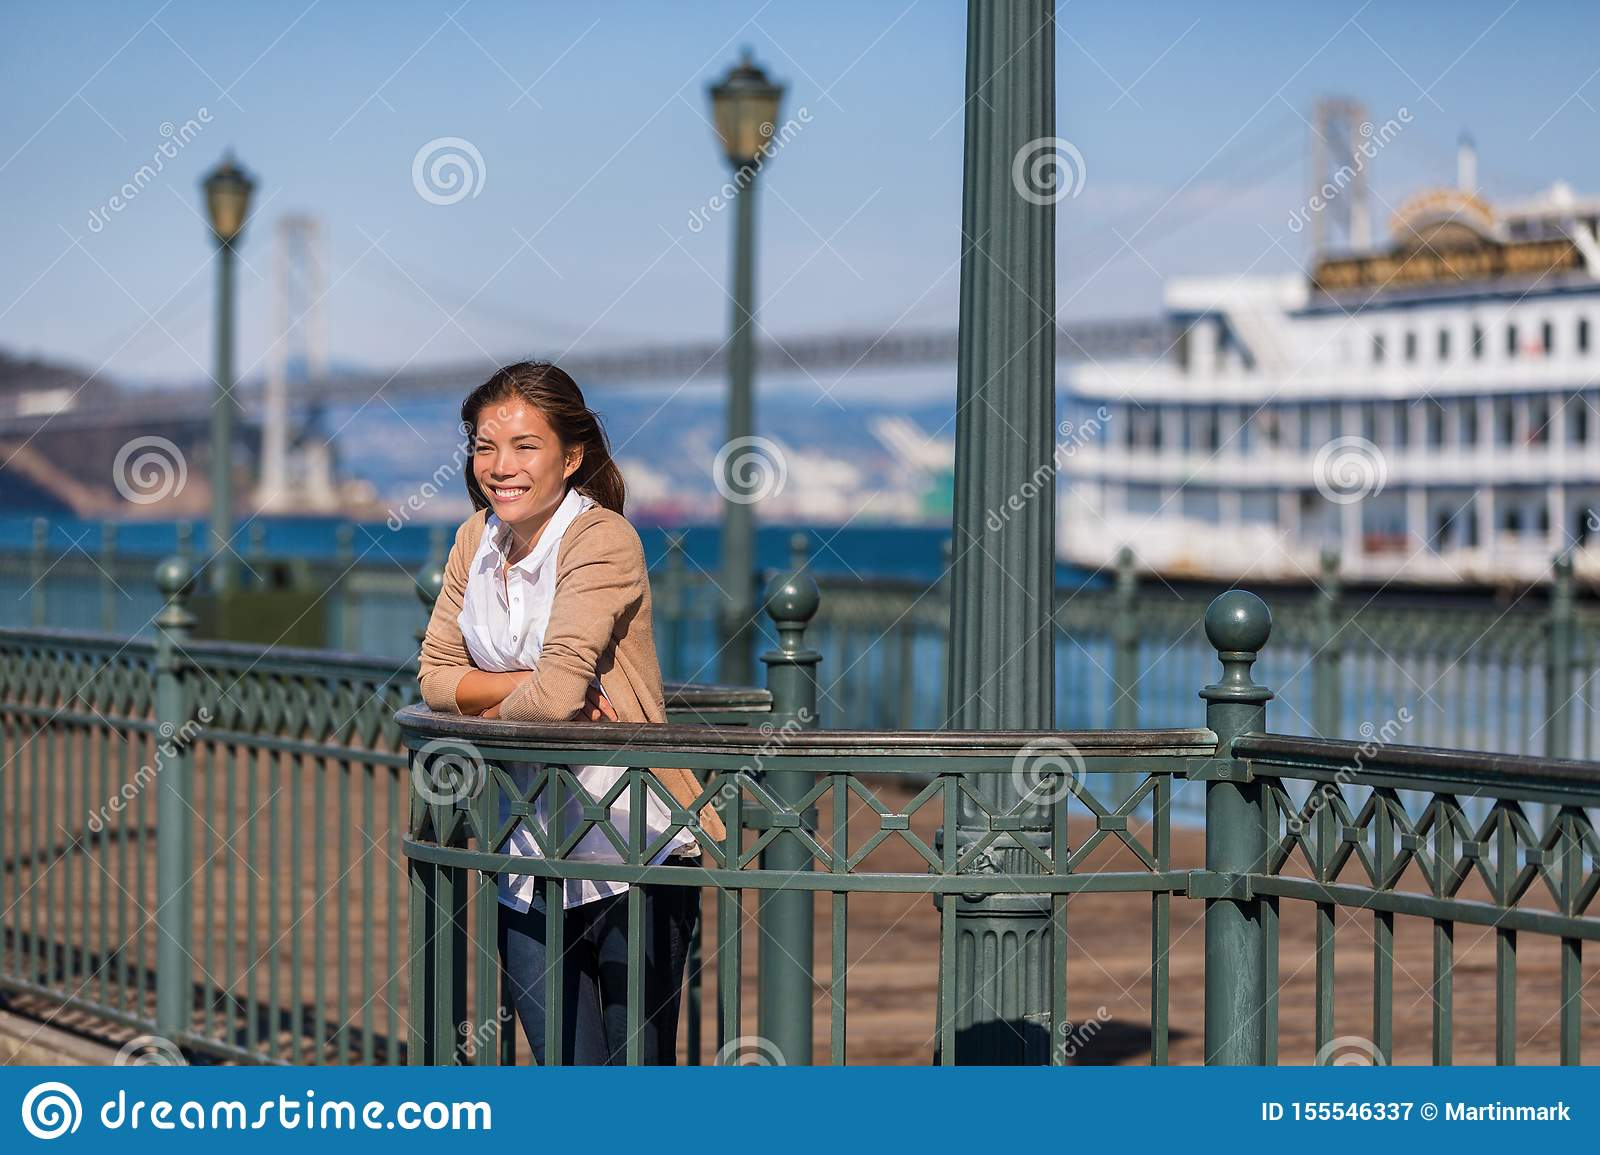 San Francisco cruise vacation travel girl tourist on pier of port. Asian woman looking at view of harbor on marina of San